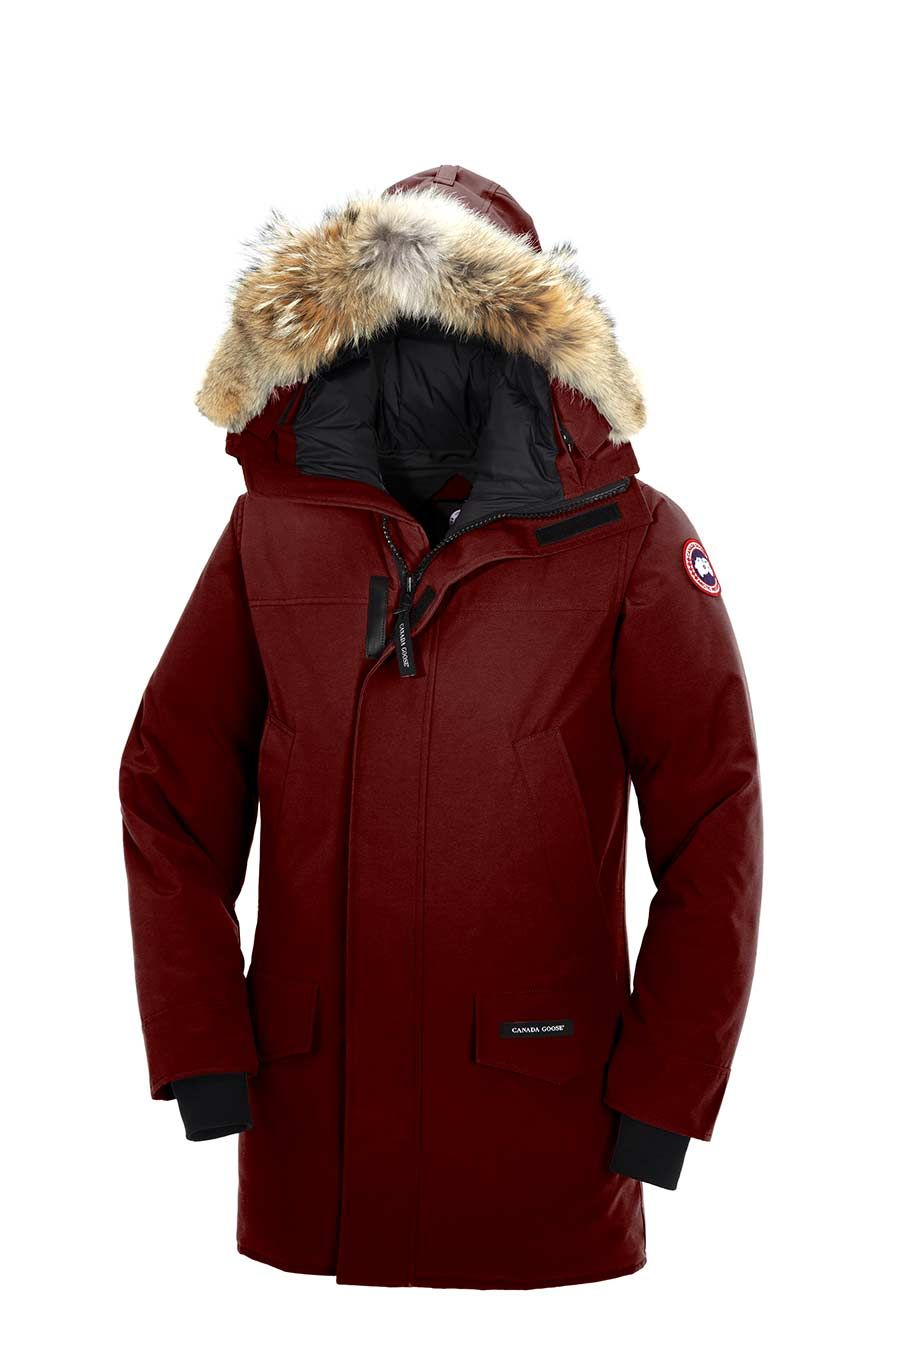 Canada Goose Langford Anorak outlete